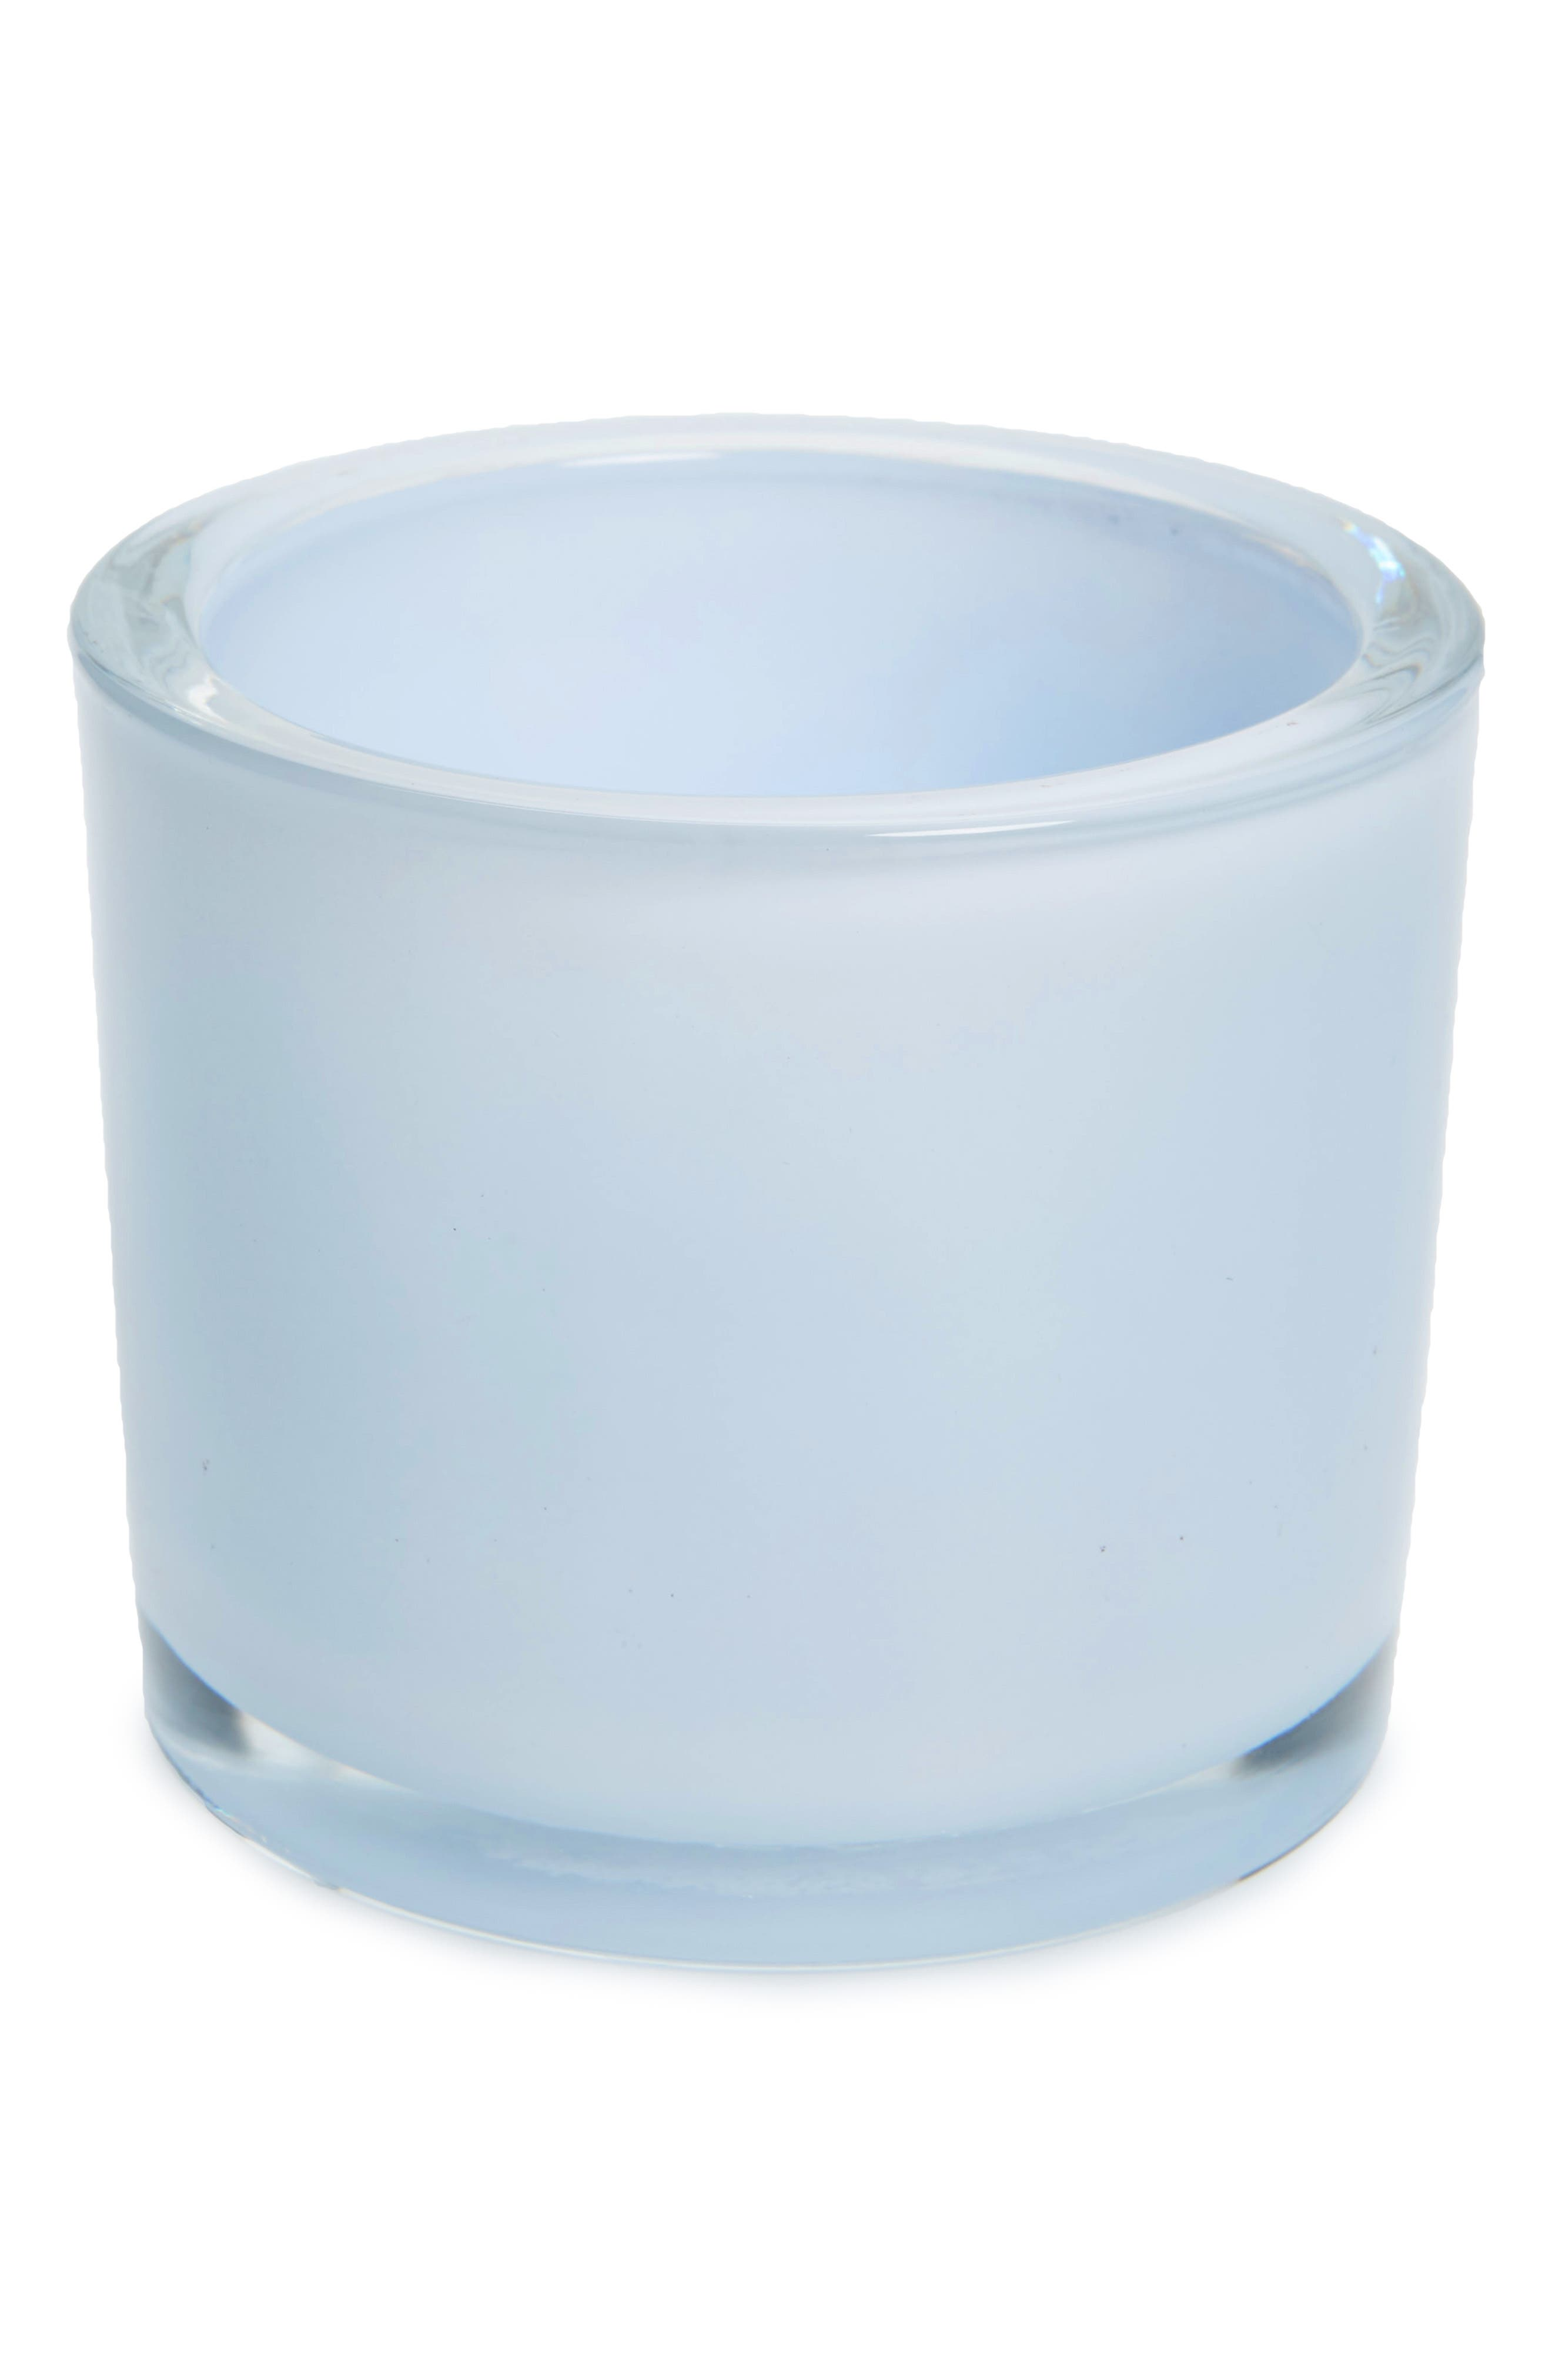 Design Imports Blue Glass Votive Holder